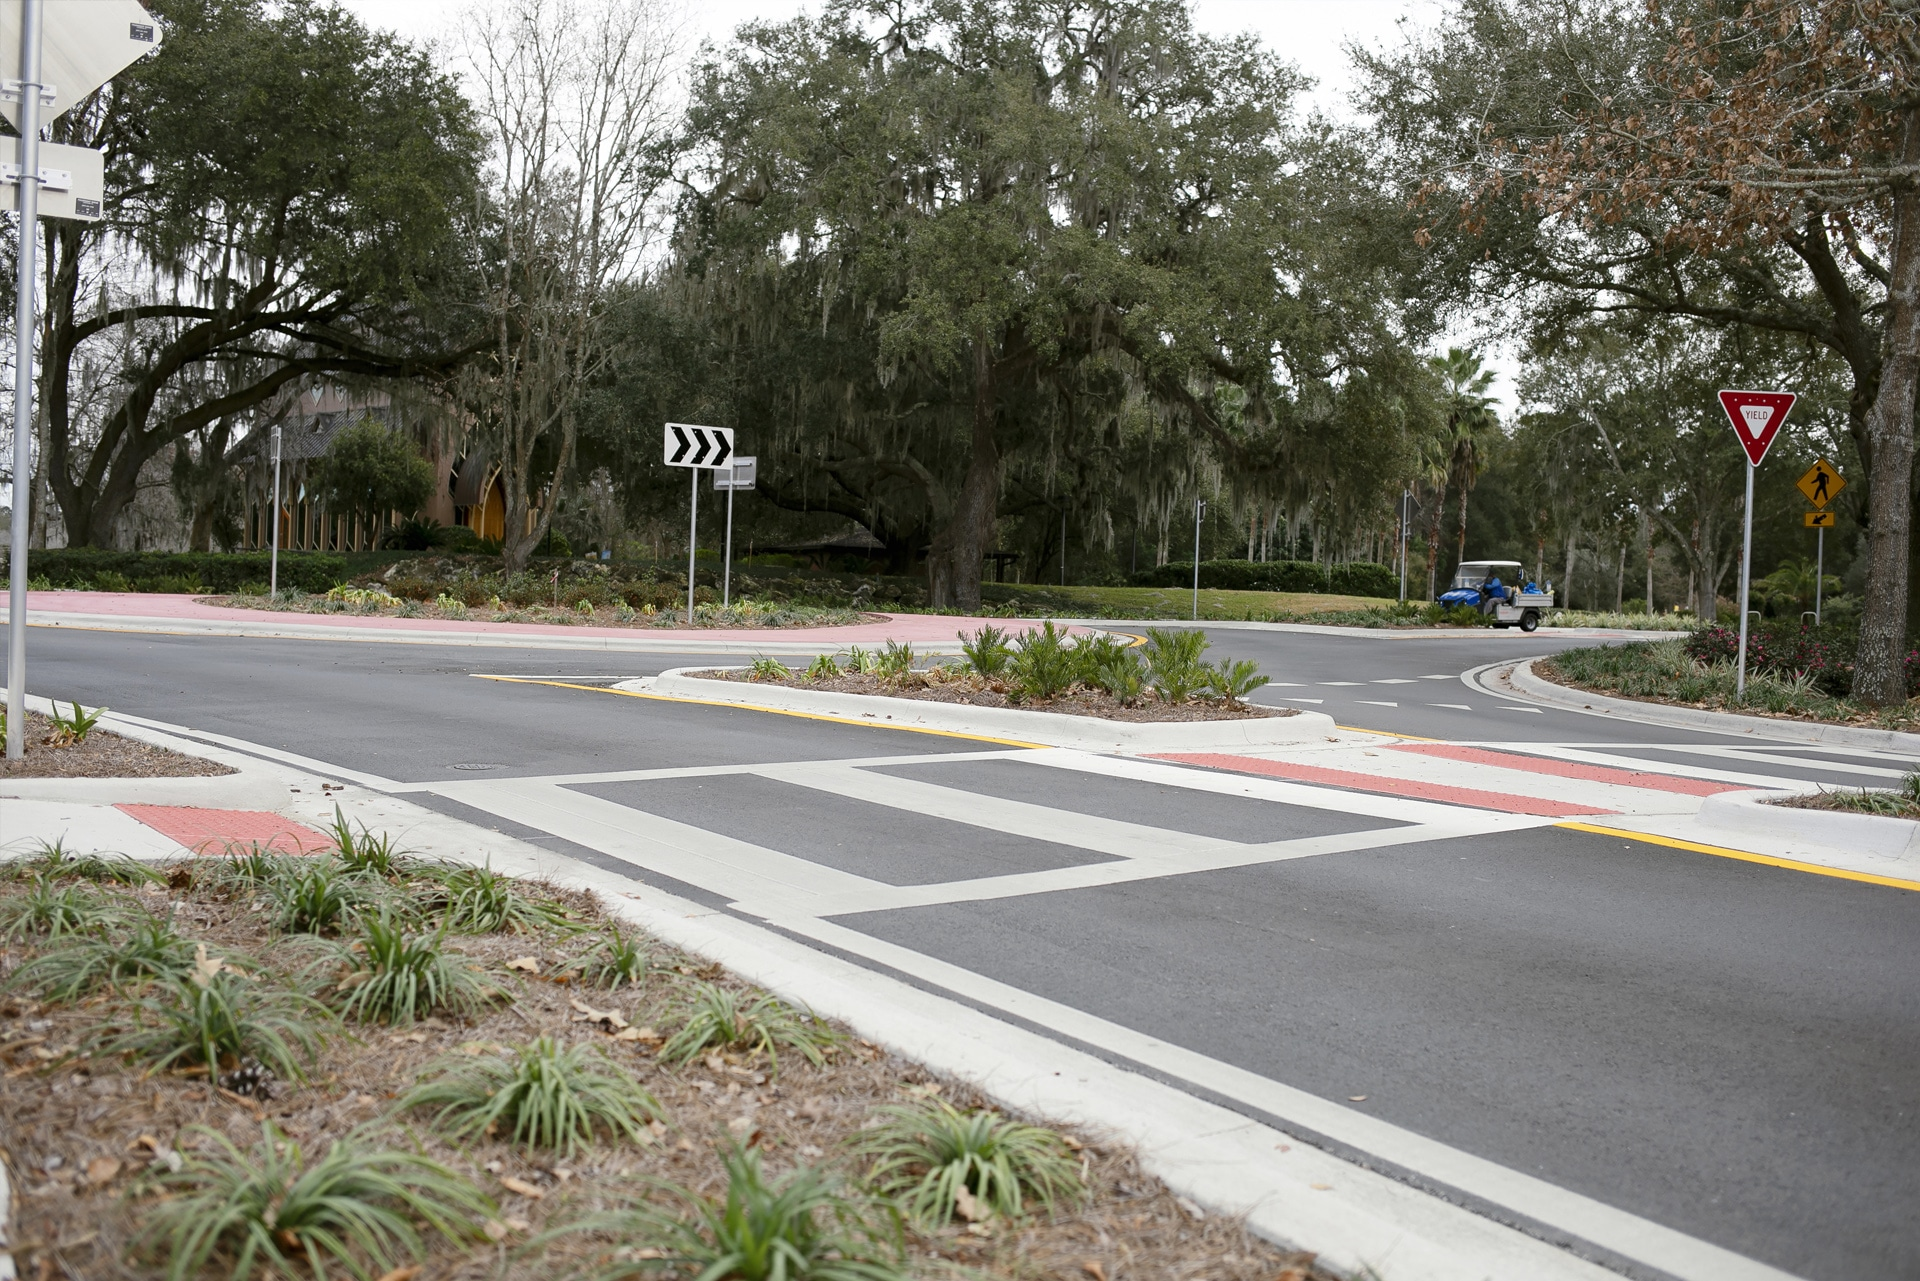 Roundabout at intersection of Radio Road and Museum Drive in Gainesville FL